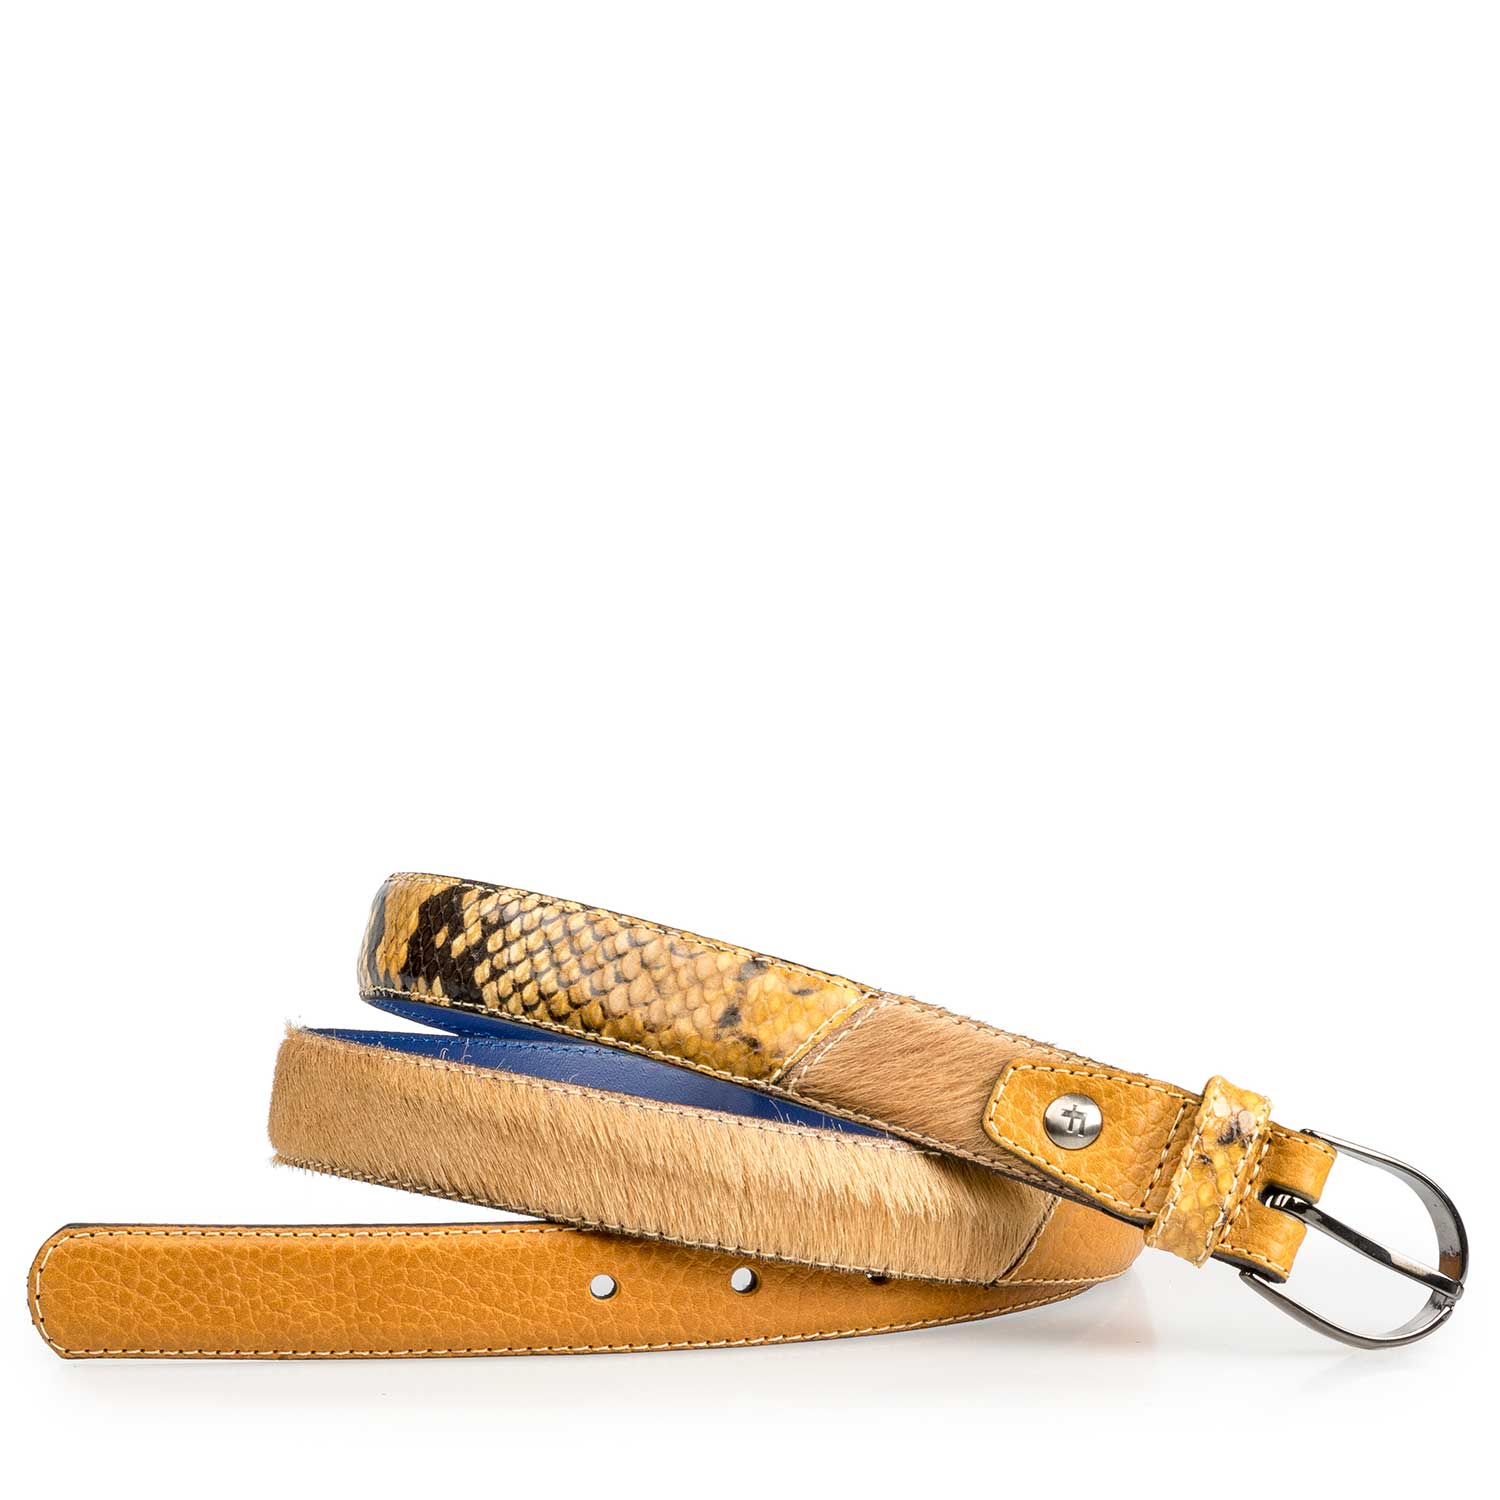 75814/11 - Ochre yellow leather belt with pony hair